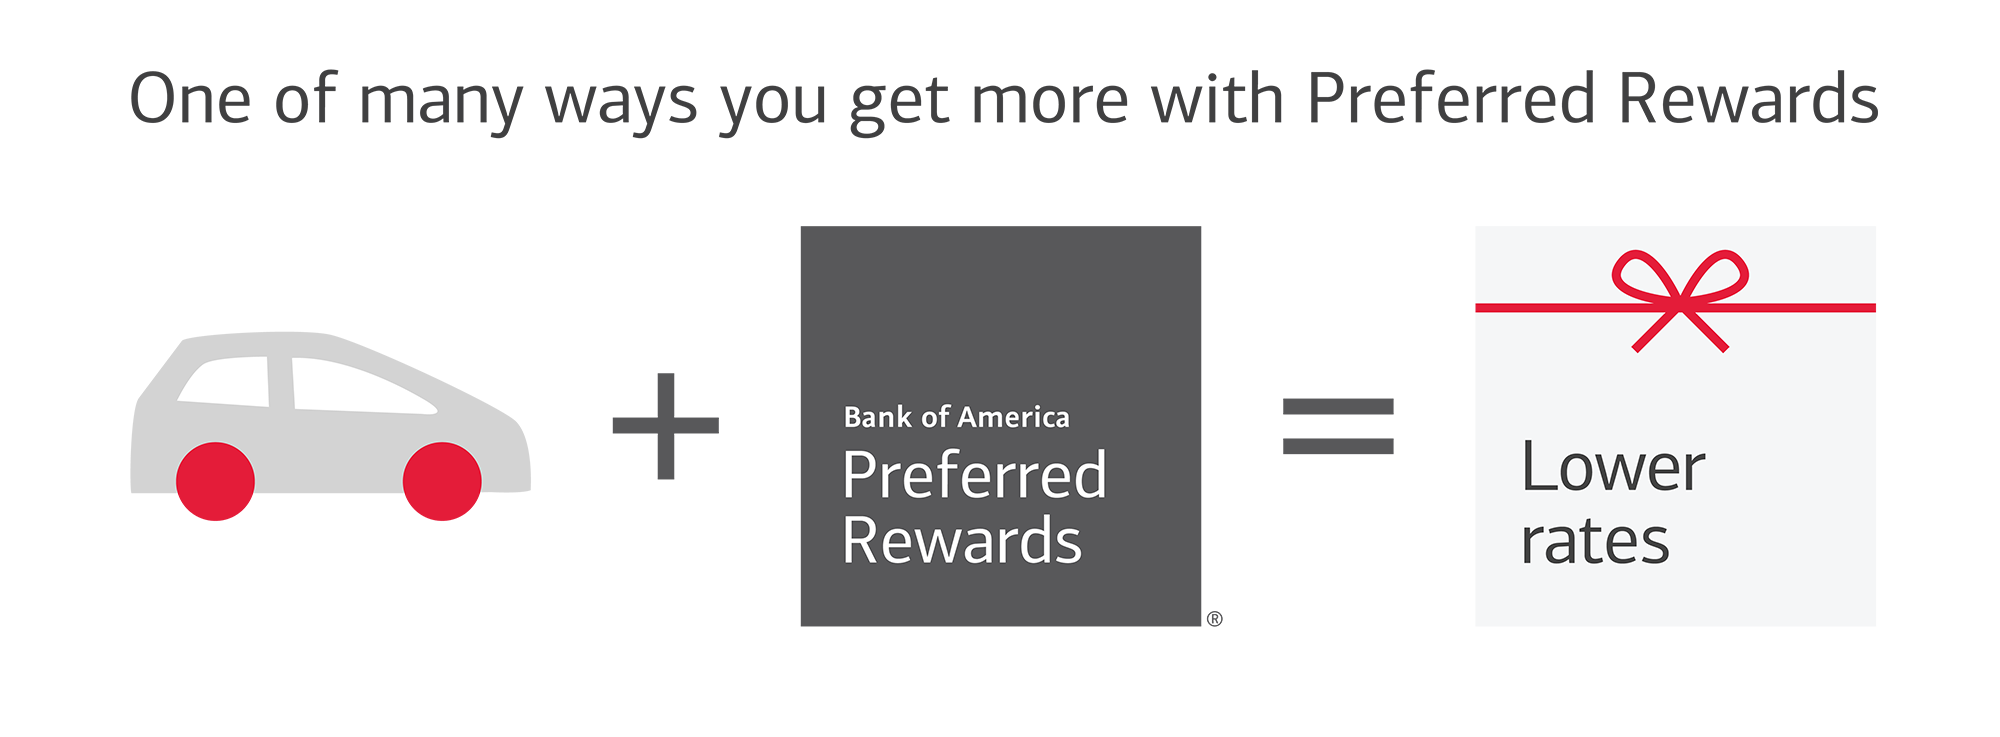 One of many ways you get more with Preferred Rewards